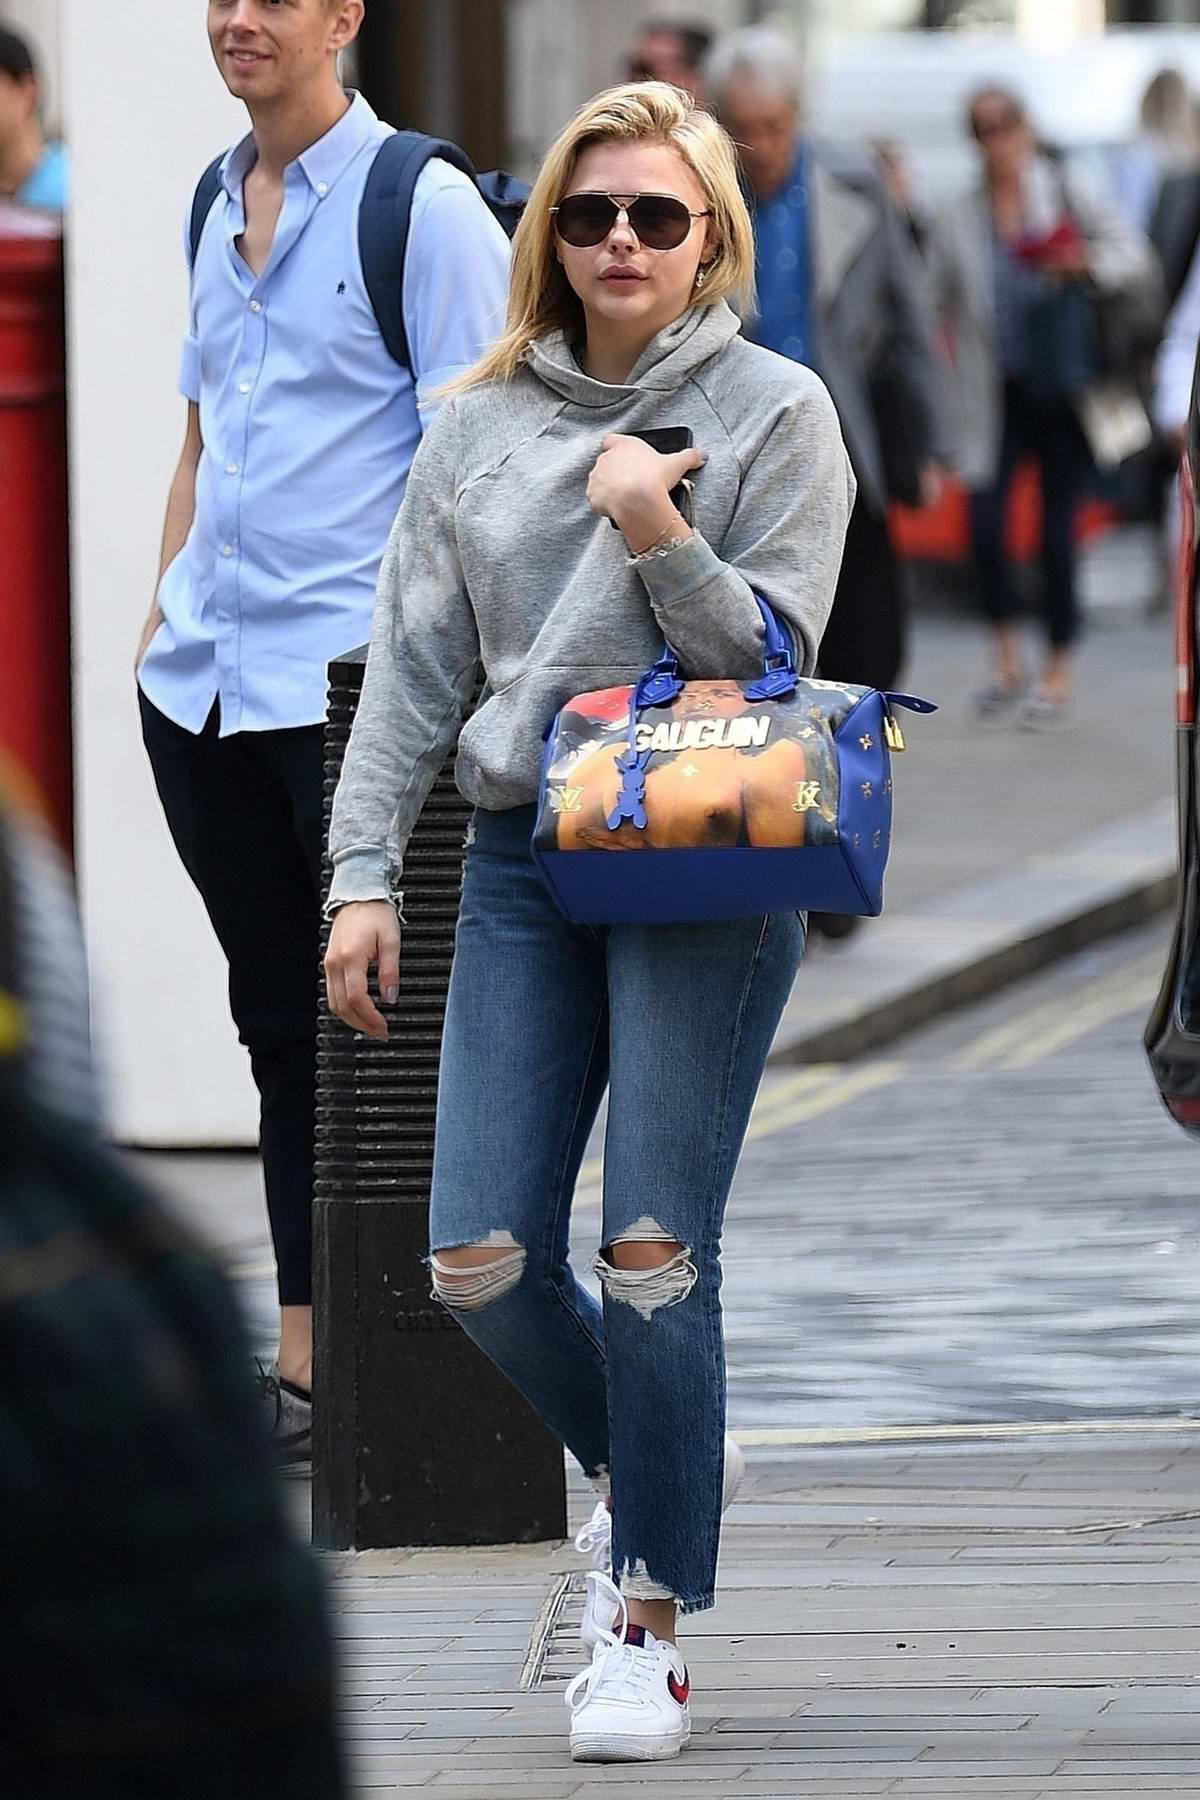 Chloe Grace Moretz seen out and about wearing a grey hoodie and ripped jeans in London, UK